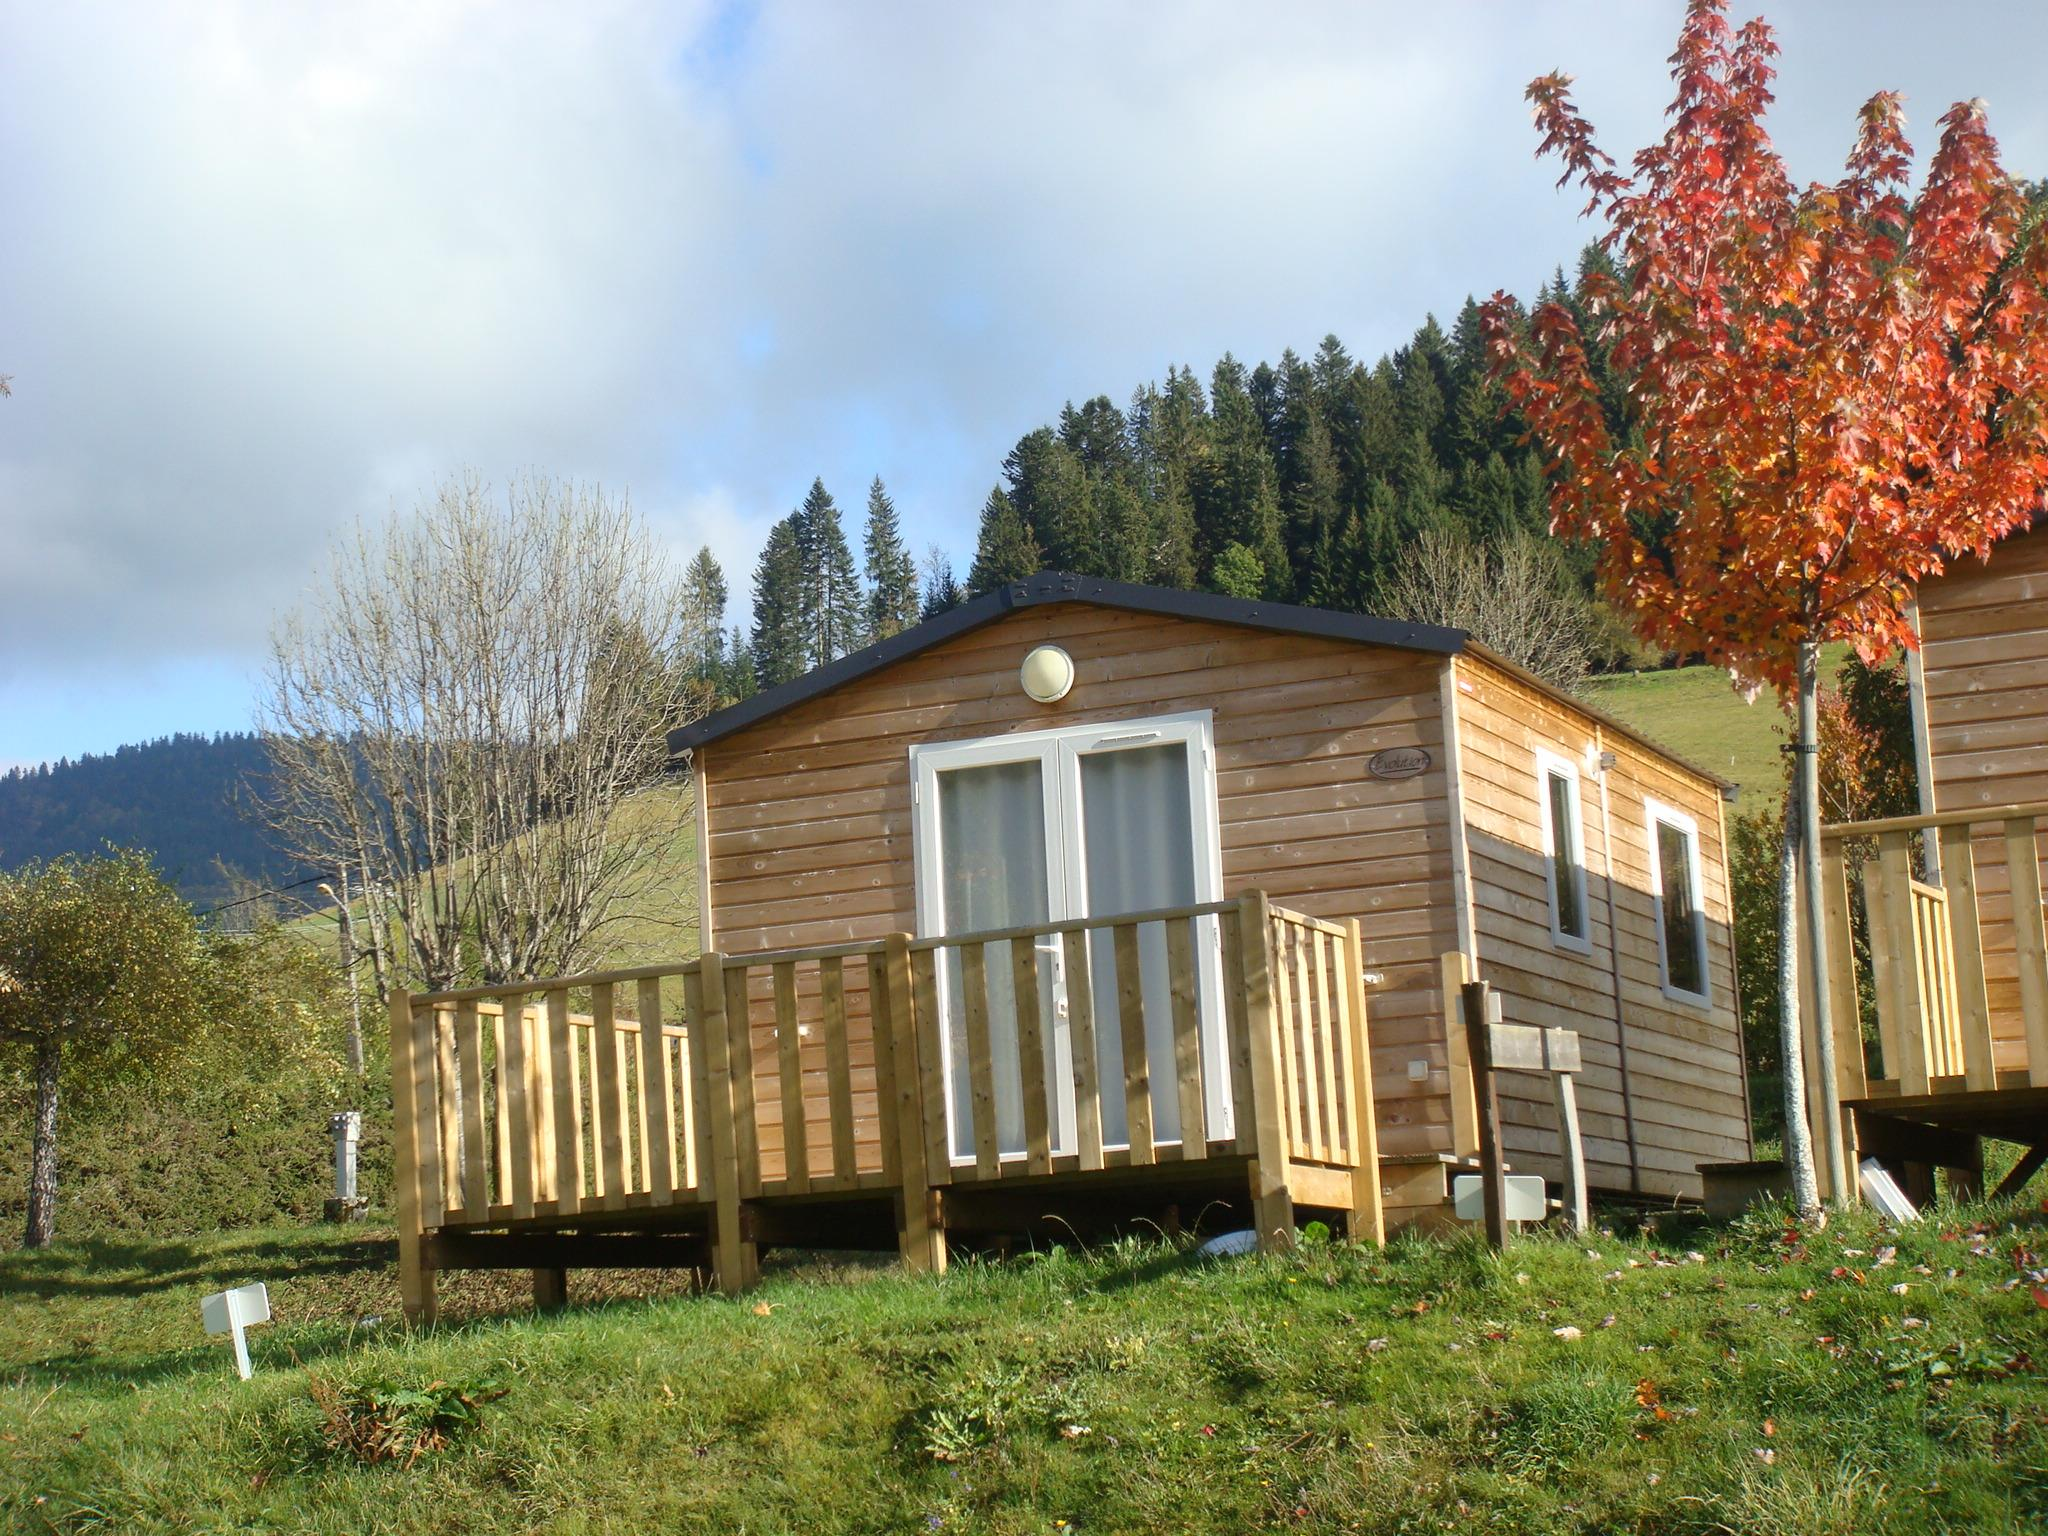 Accommodation - Mobile Home Confort+ Crocus - 1 Bedroom - 20M² + Terrace 10,4M² - Camping Le Vercors